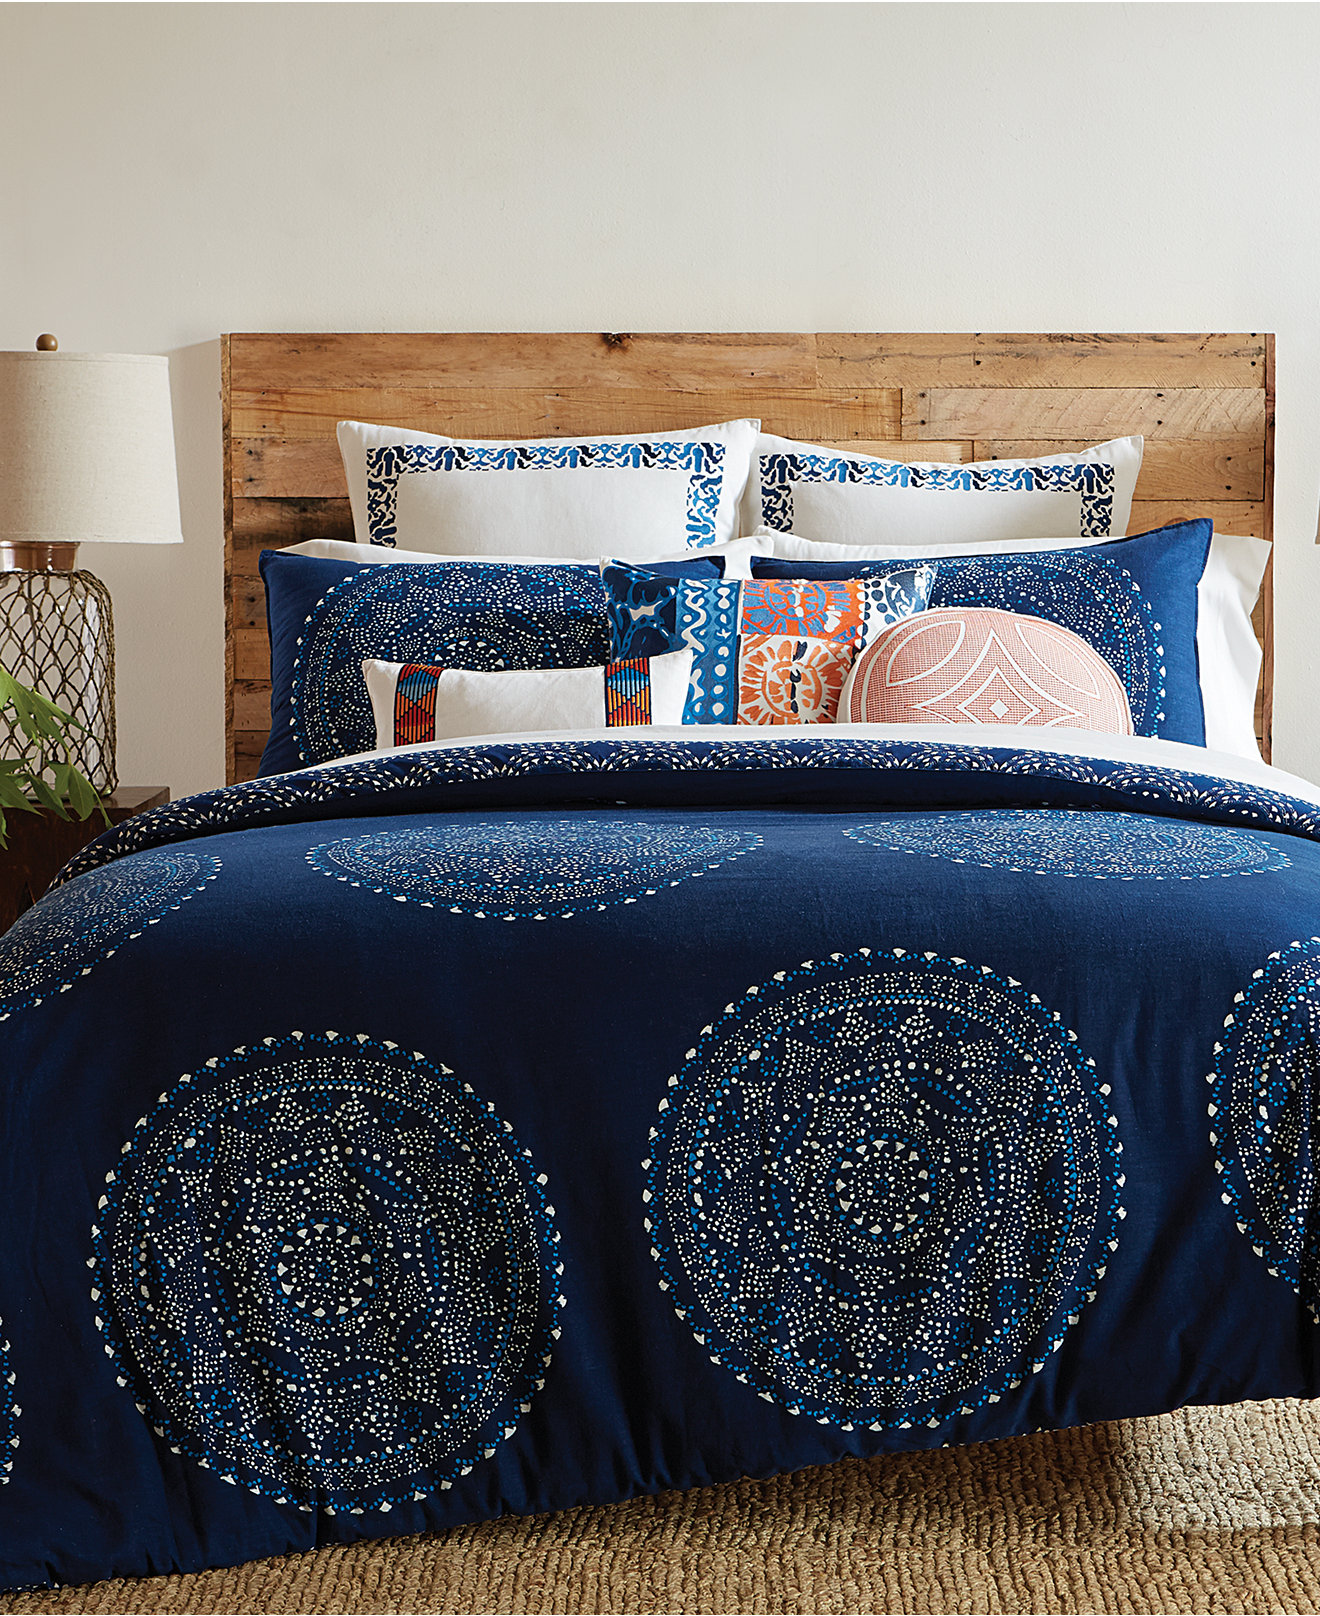 exceptional top ikat silver cotton comforter and duvet cheap set turk sets grey images blue king trina bedding super all indigo striped cover green covers luxury